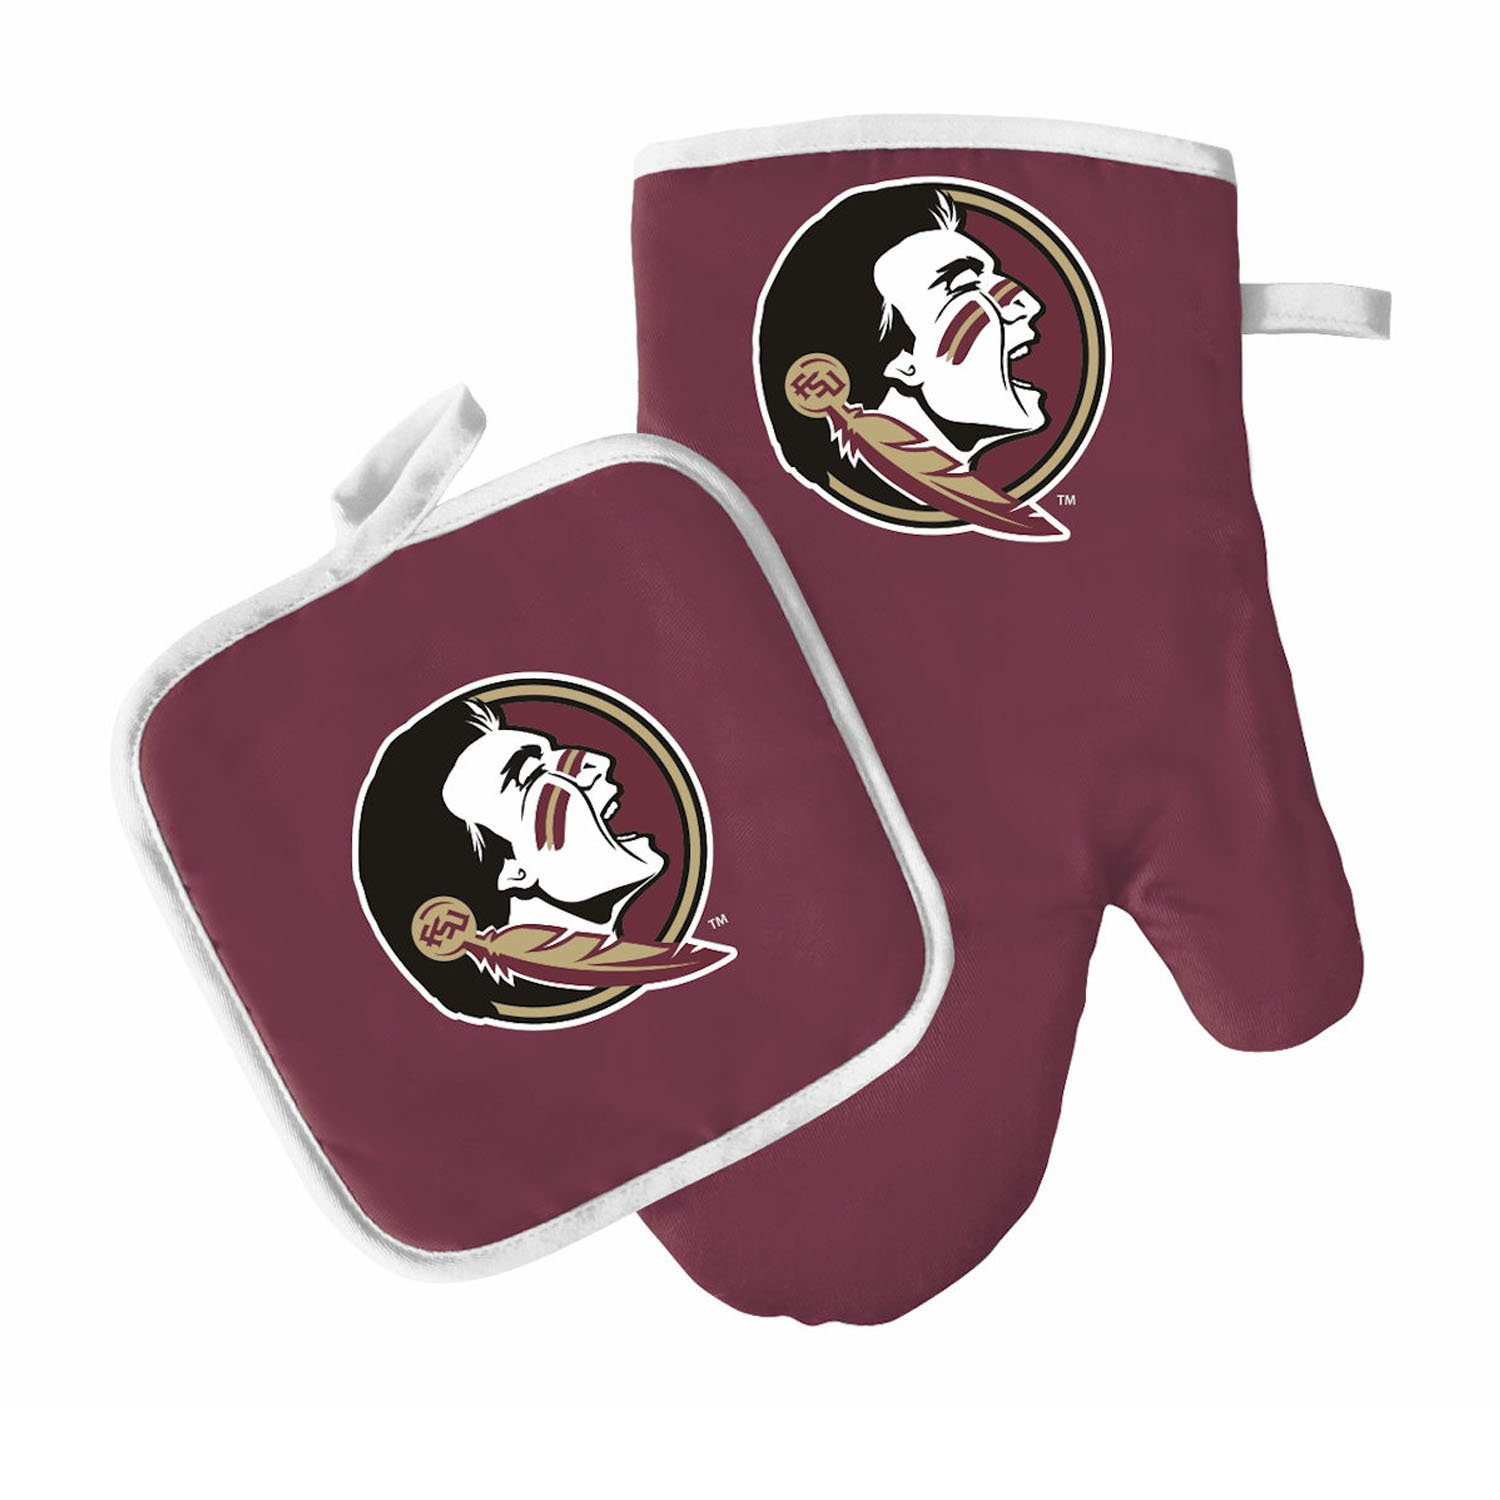 Pro Specialties Group Oven Mitt and Pot Holder Set - Barbeque BBQ Kitchen Backyard Outdoors - NCAA - Florida State Seminoles